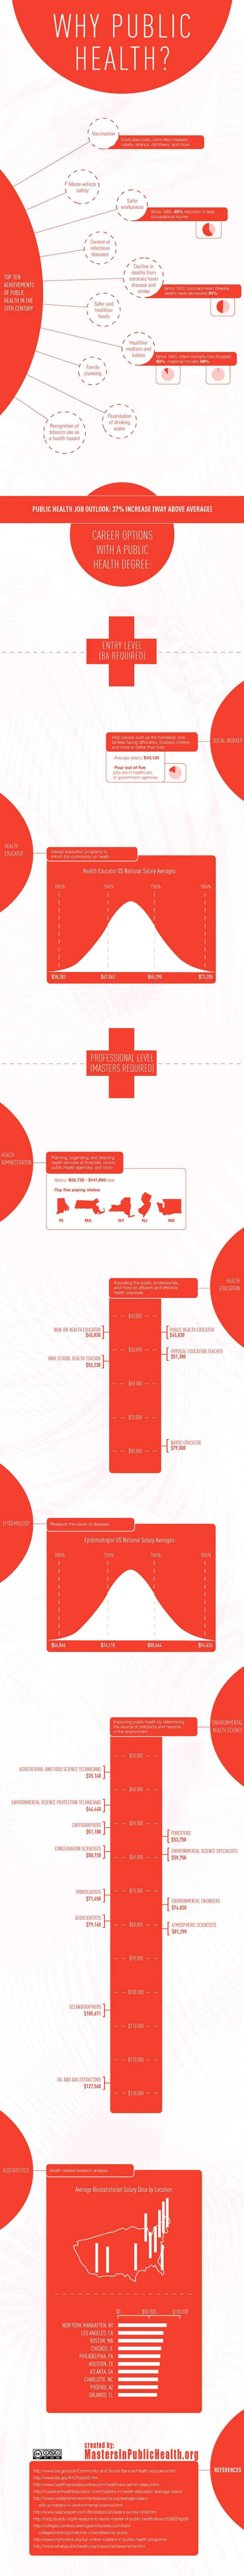 Here's an interesting infographic on why more people should consider a Public Health degree.